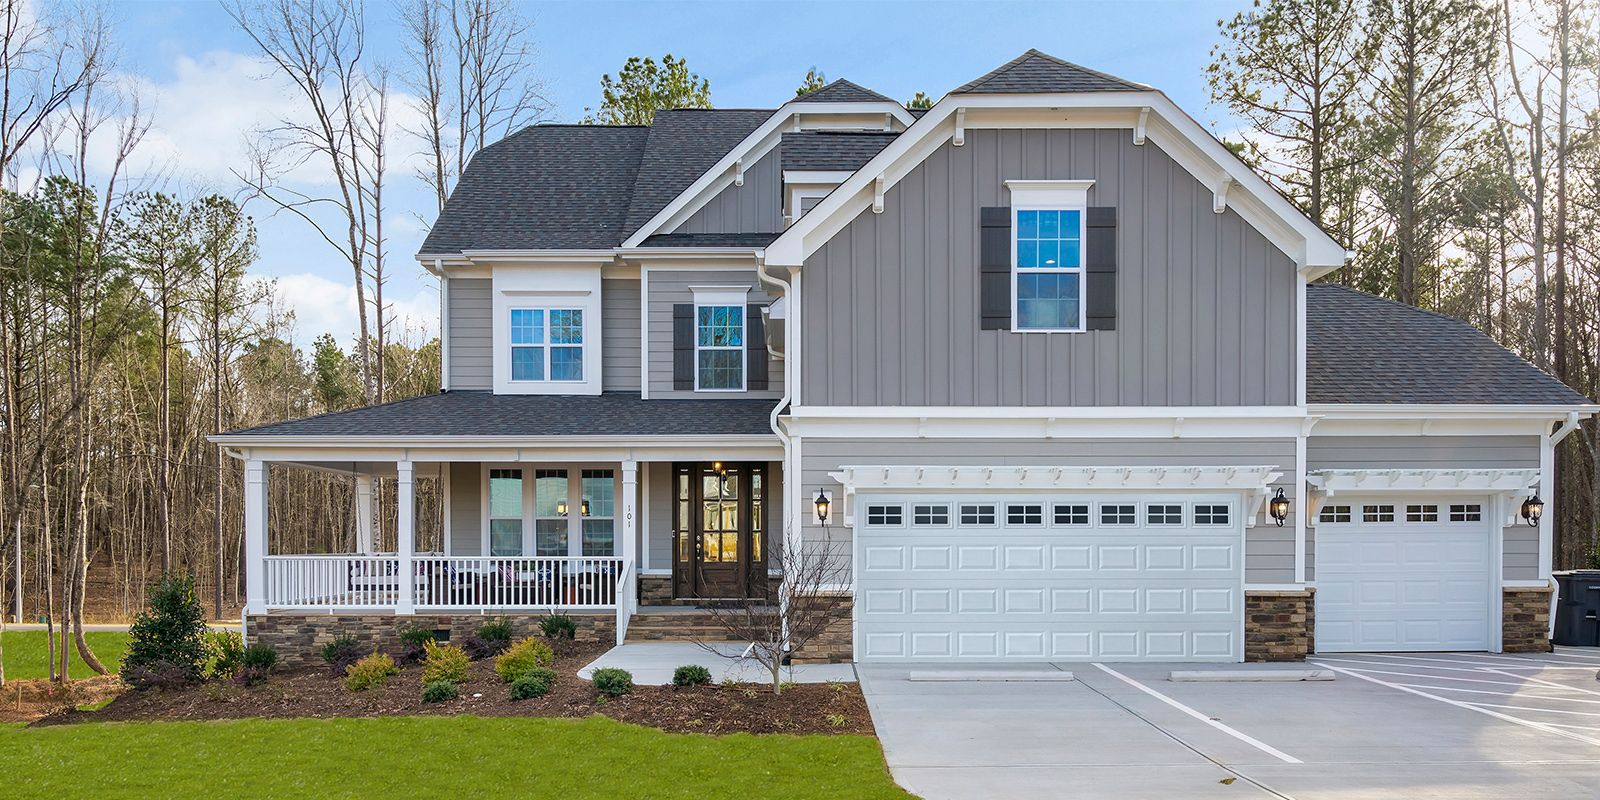 Holly Springs - Ballentine Place